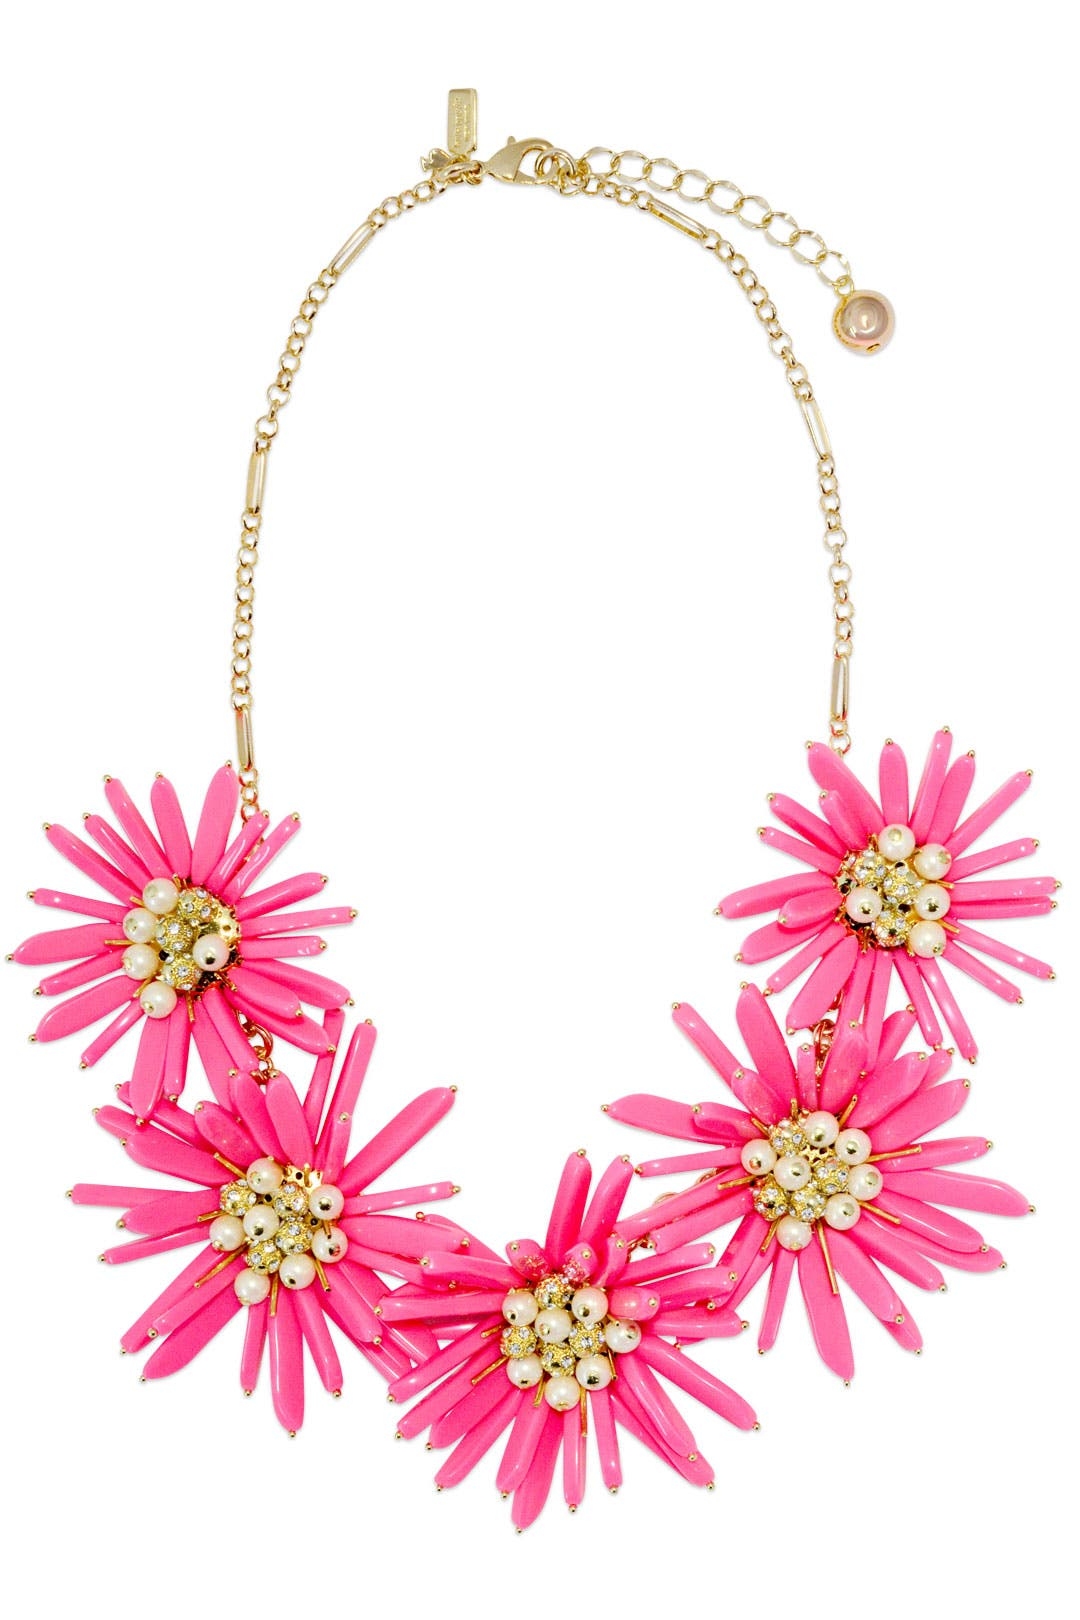 Field Day Statement Necklace by kate spade new york accessories